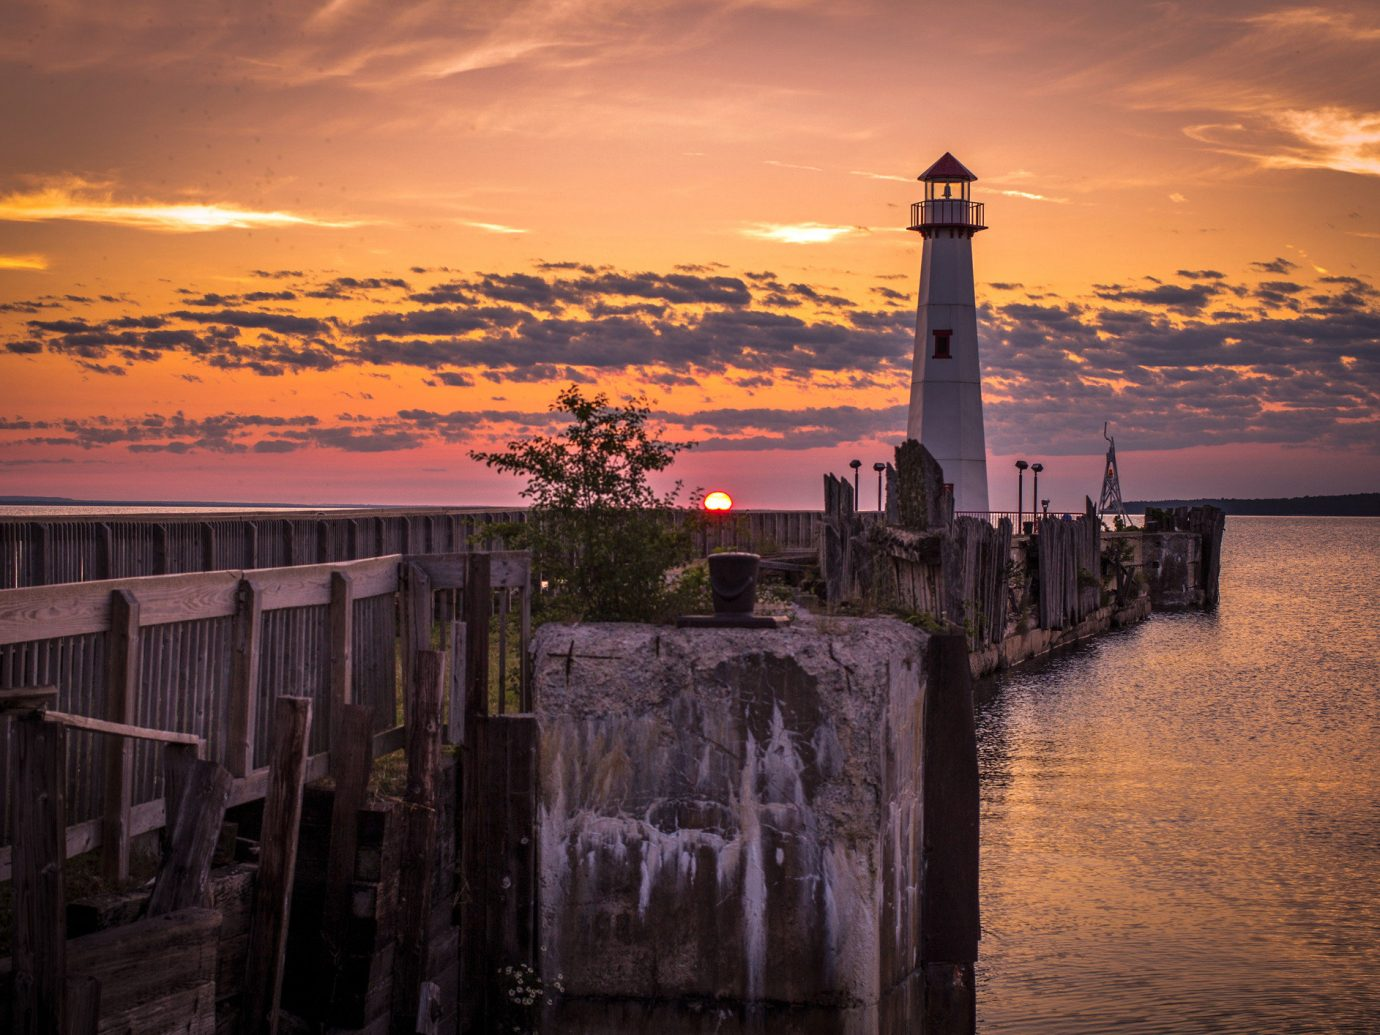 Trip Ideas sky outdoor Sunset water pier scene sunrise dawn horizon evening dusk Sea morning tower reflection Ocean Coast skyline cityscape clouds setting cloudy